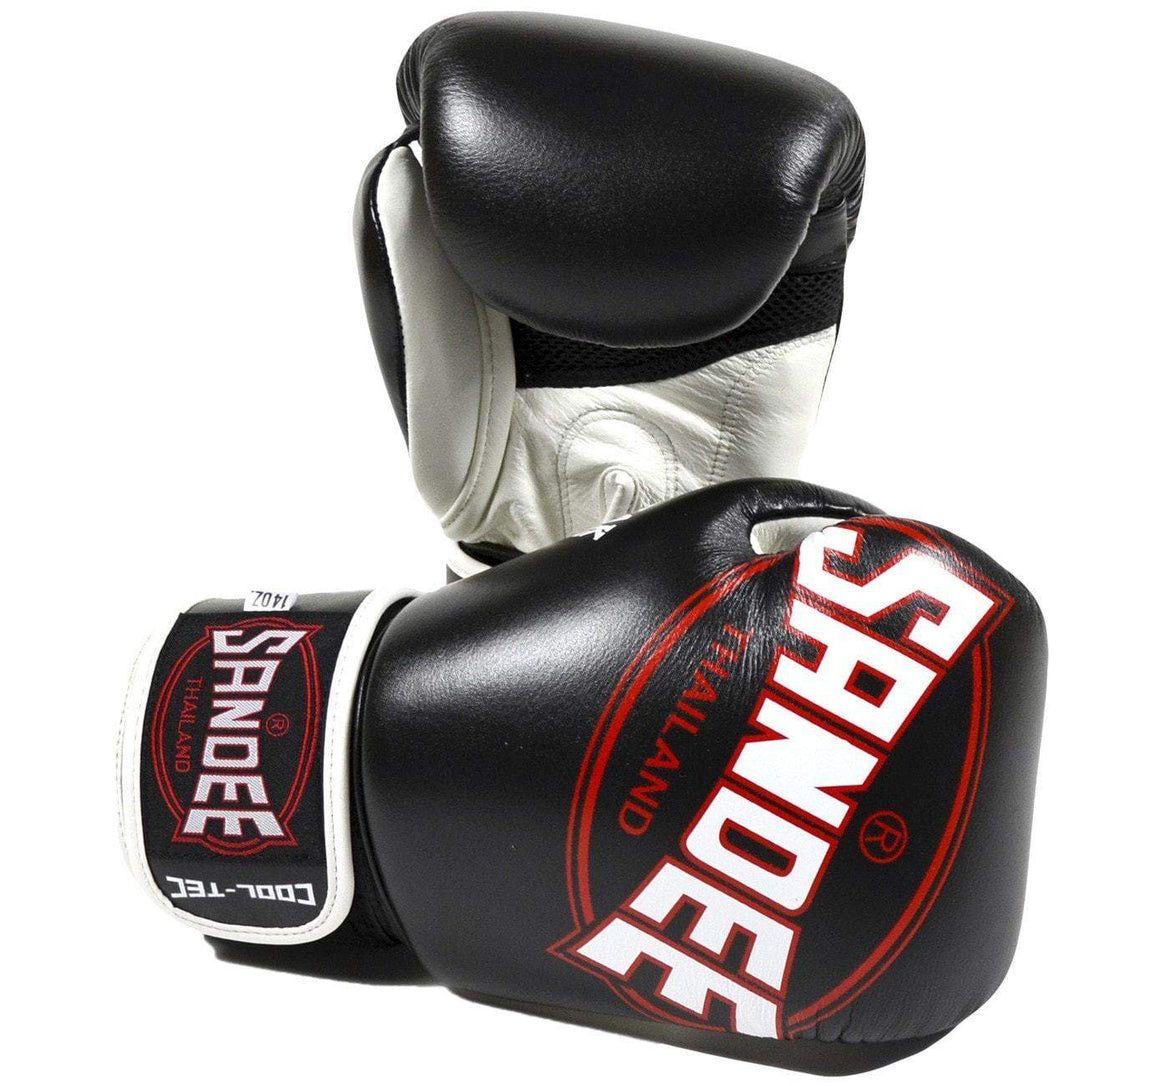 Sandee Cool-Tec Leather Boxing Gloves - Black/White